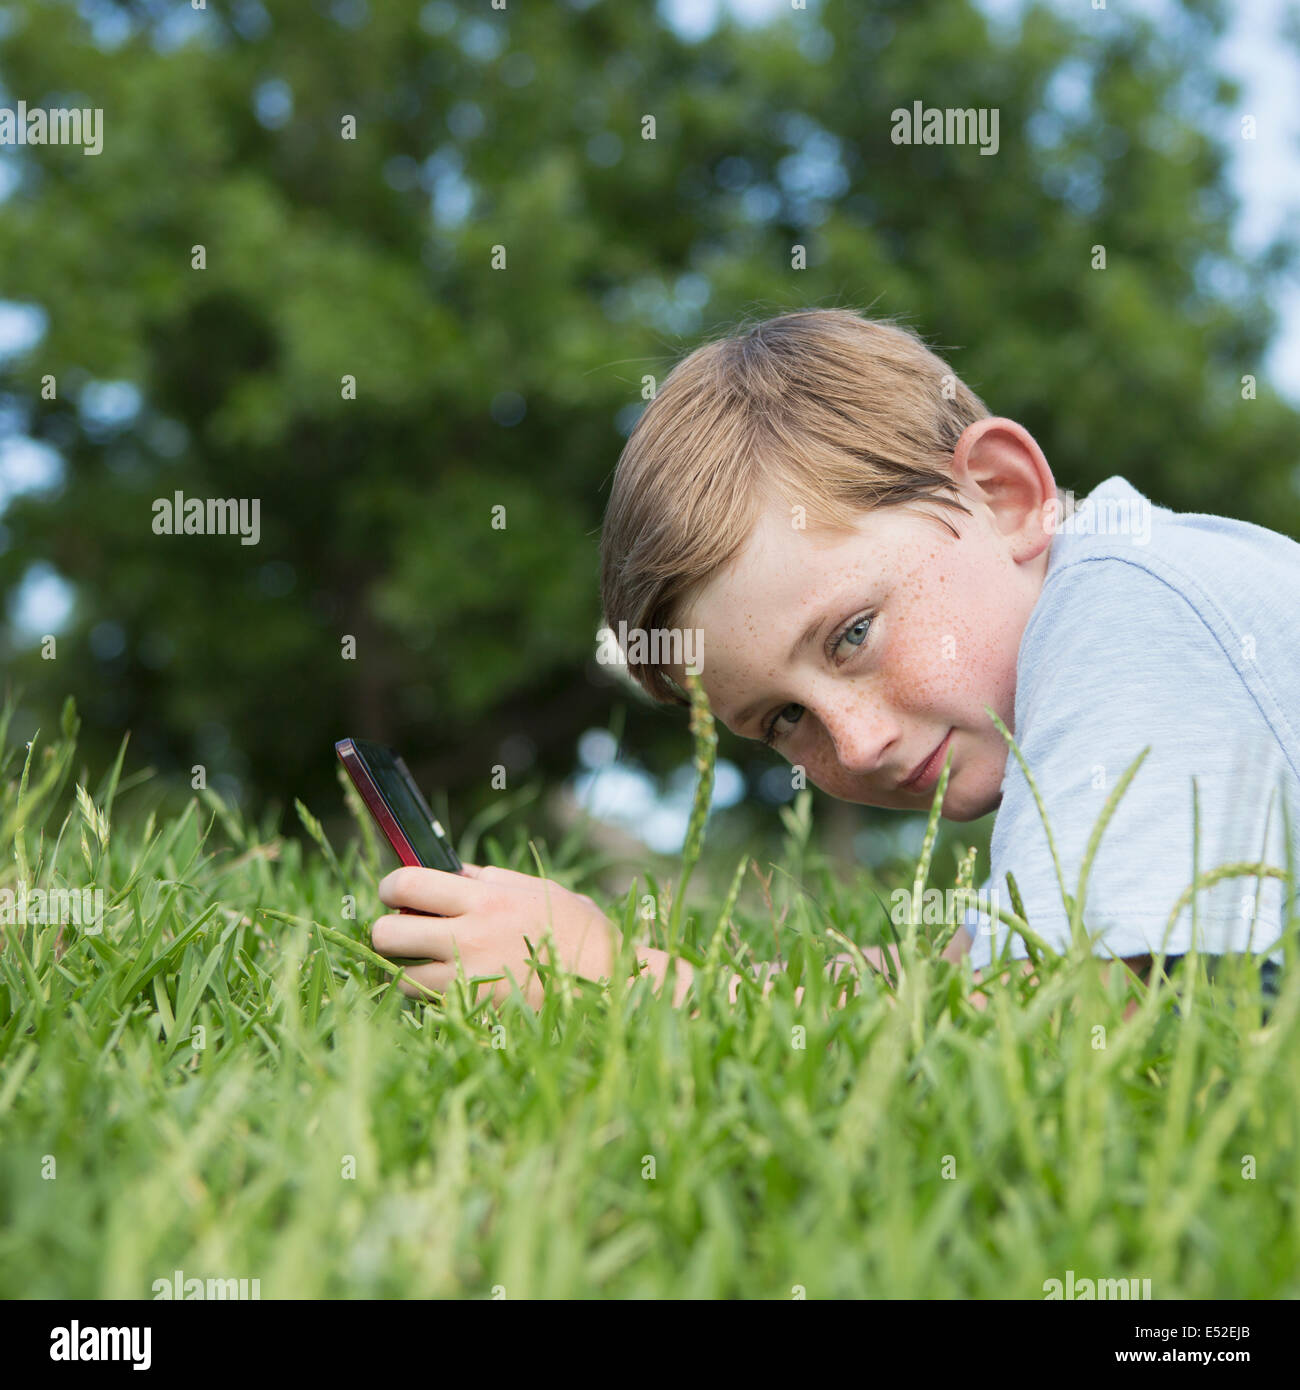 A young boy sitting on the grass using a hand held electronic games device. - Stock Image